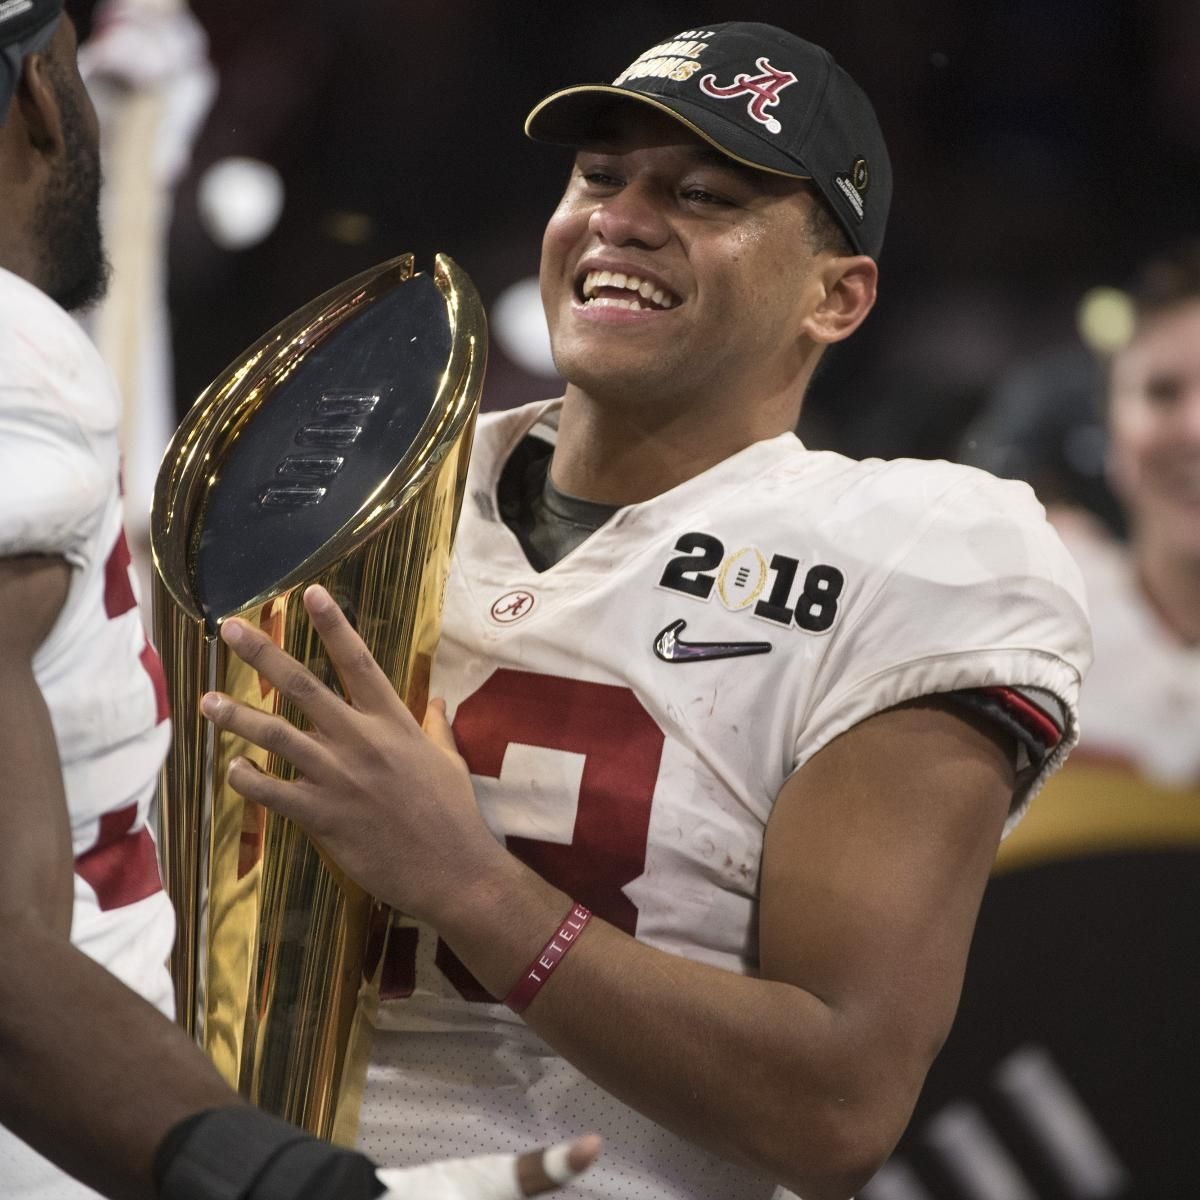 Tua Tagovailoa took to Twitter to defend teammate Jalen